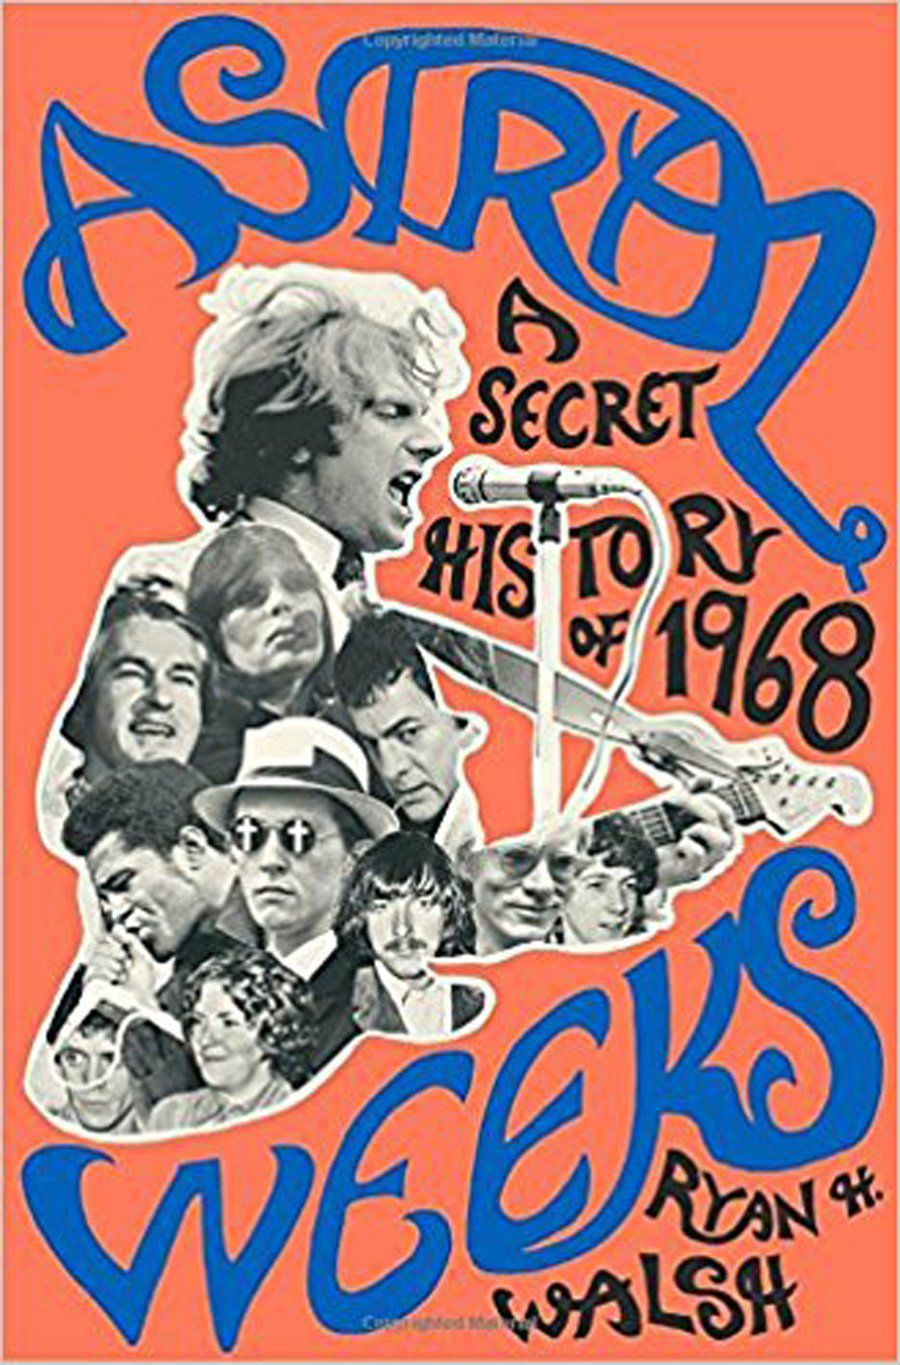 Astral Weeks: A Secret History of 1968   Ryan H. Walsh   LINKS   Official Site   Amazon